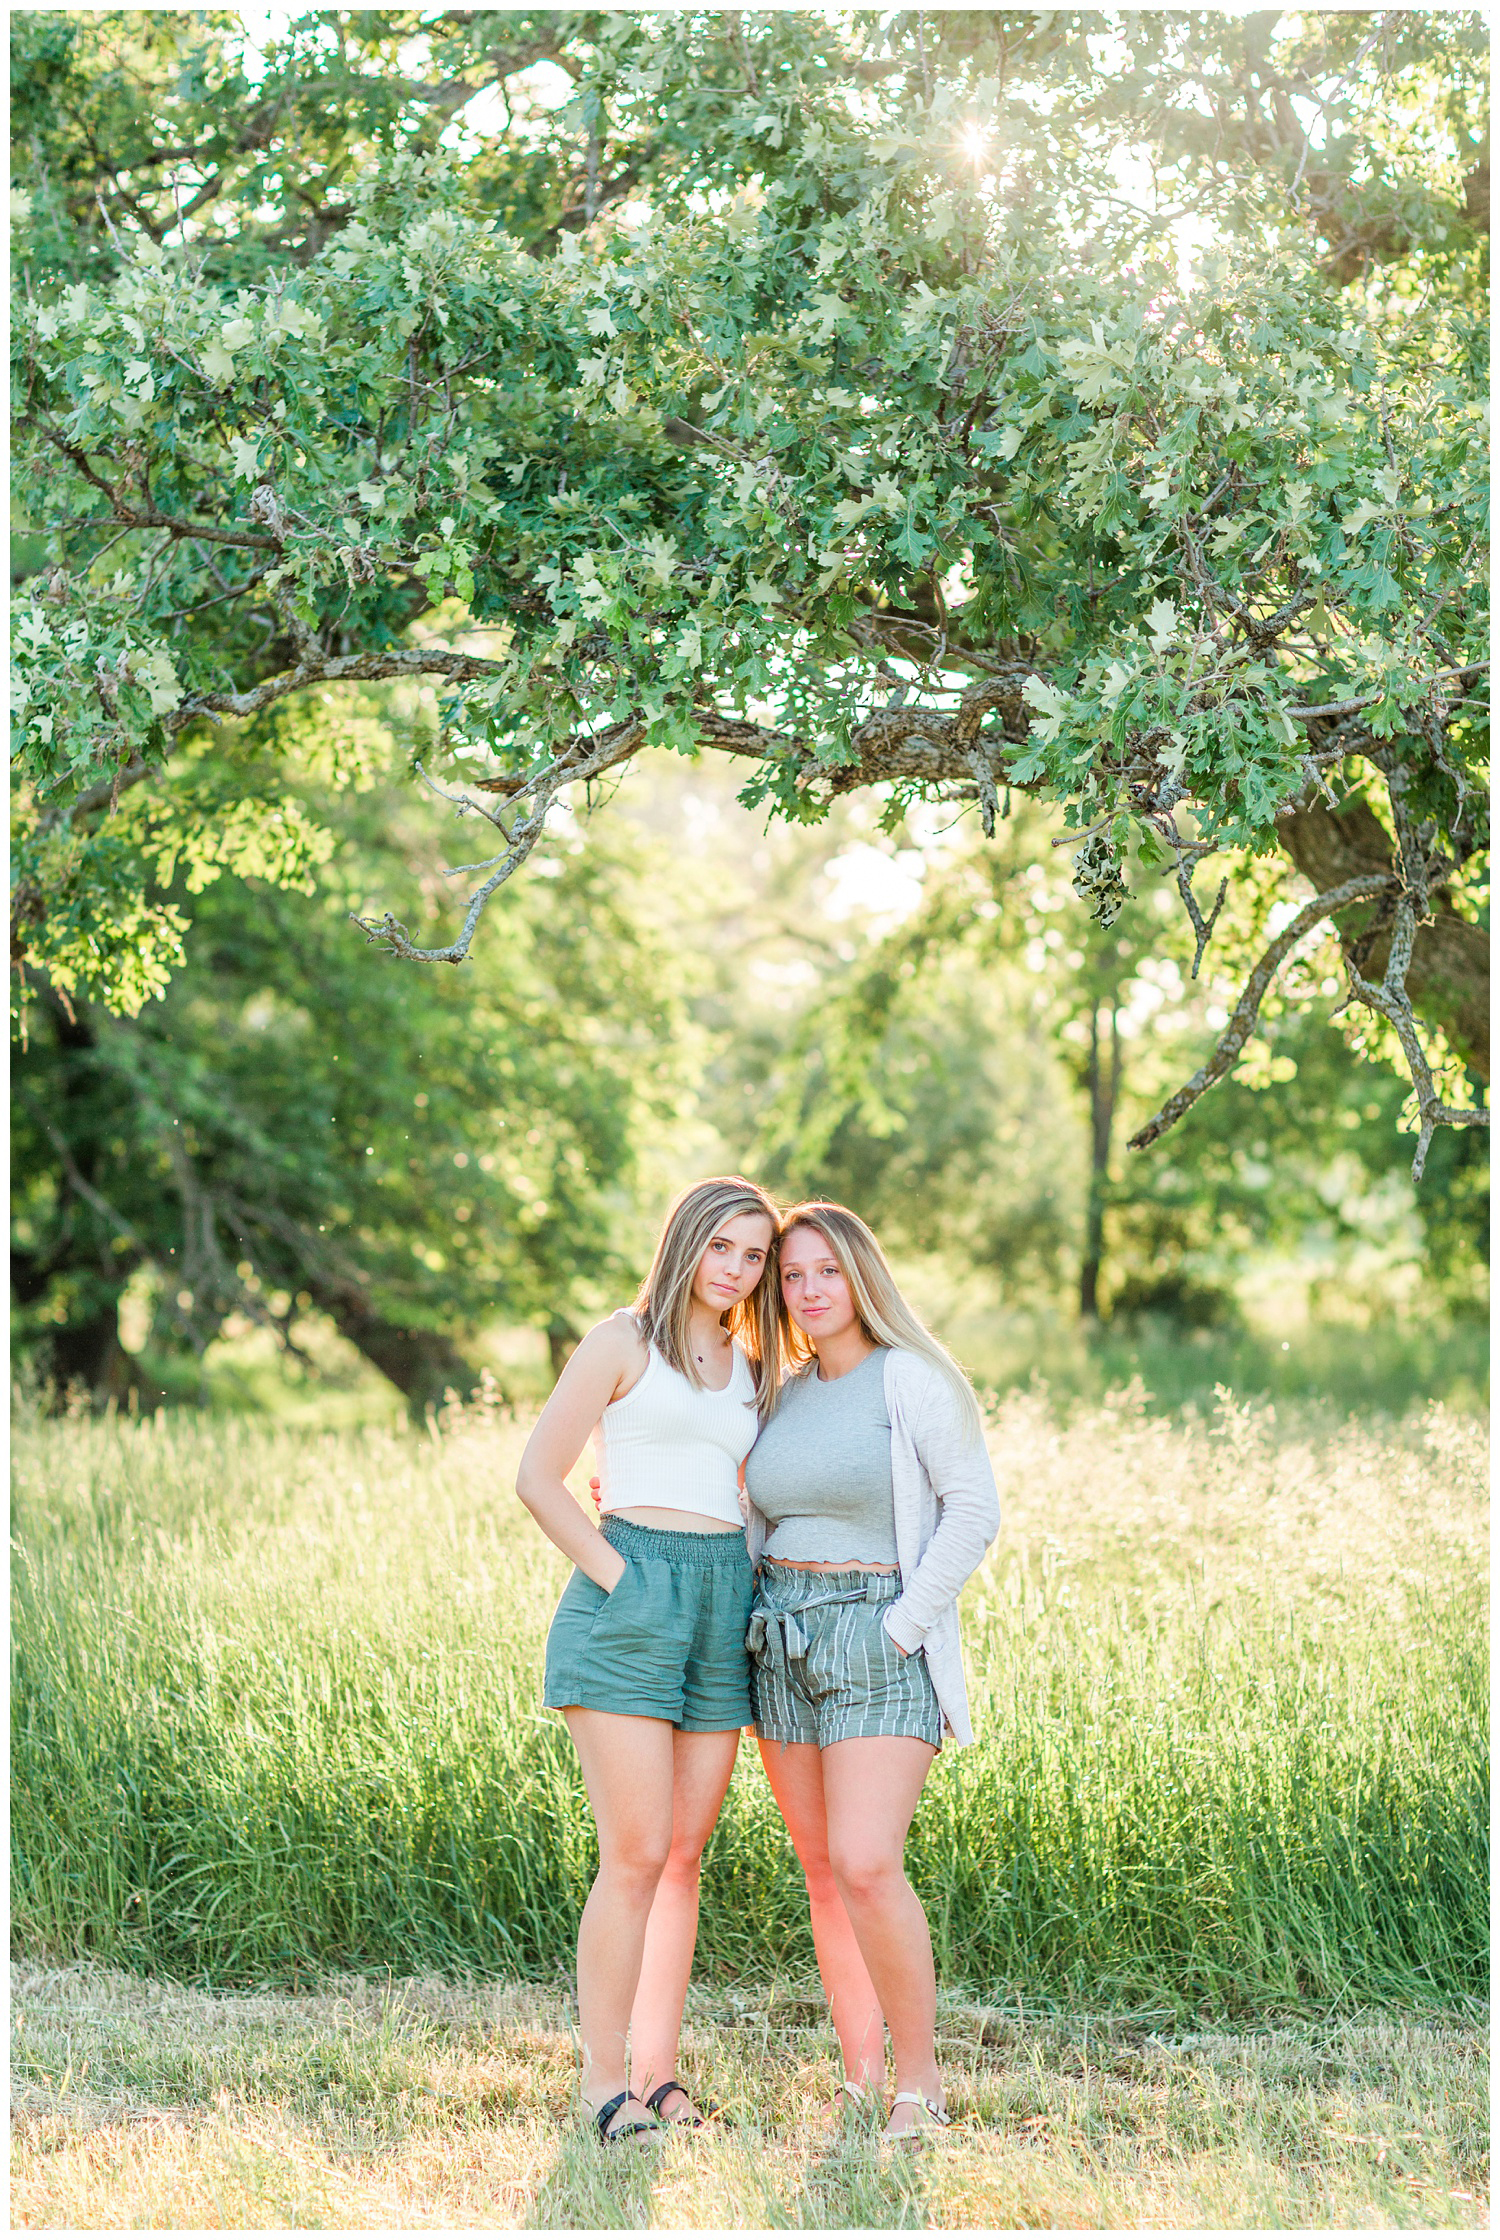 Senior girls best friends BFFs embrace in a grassy field on a rural Iowa farm with glowing, bright and airy lighting | CB Studio